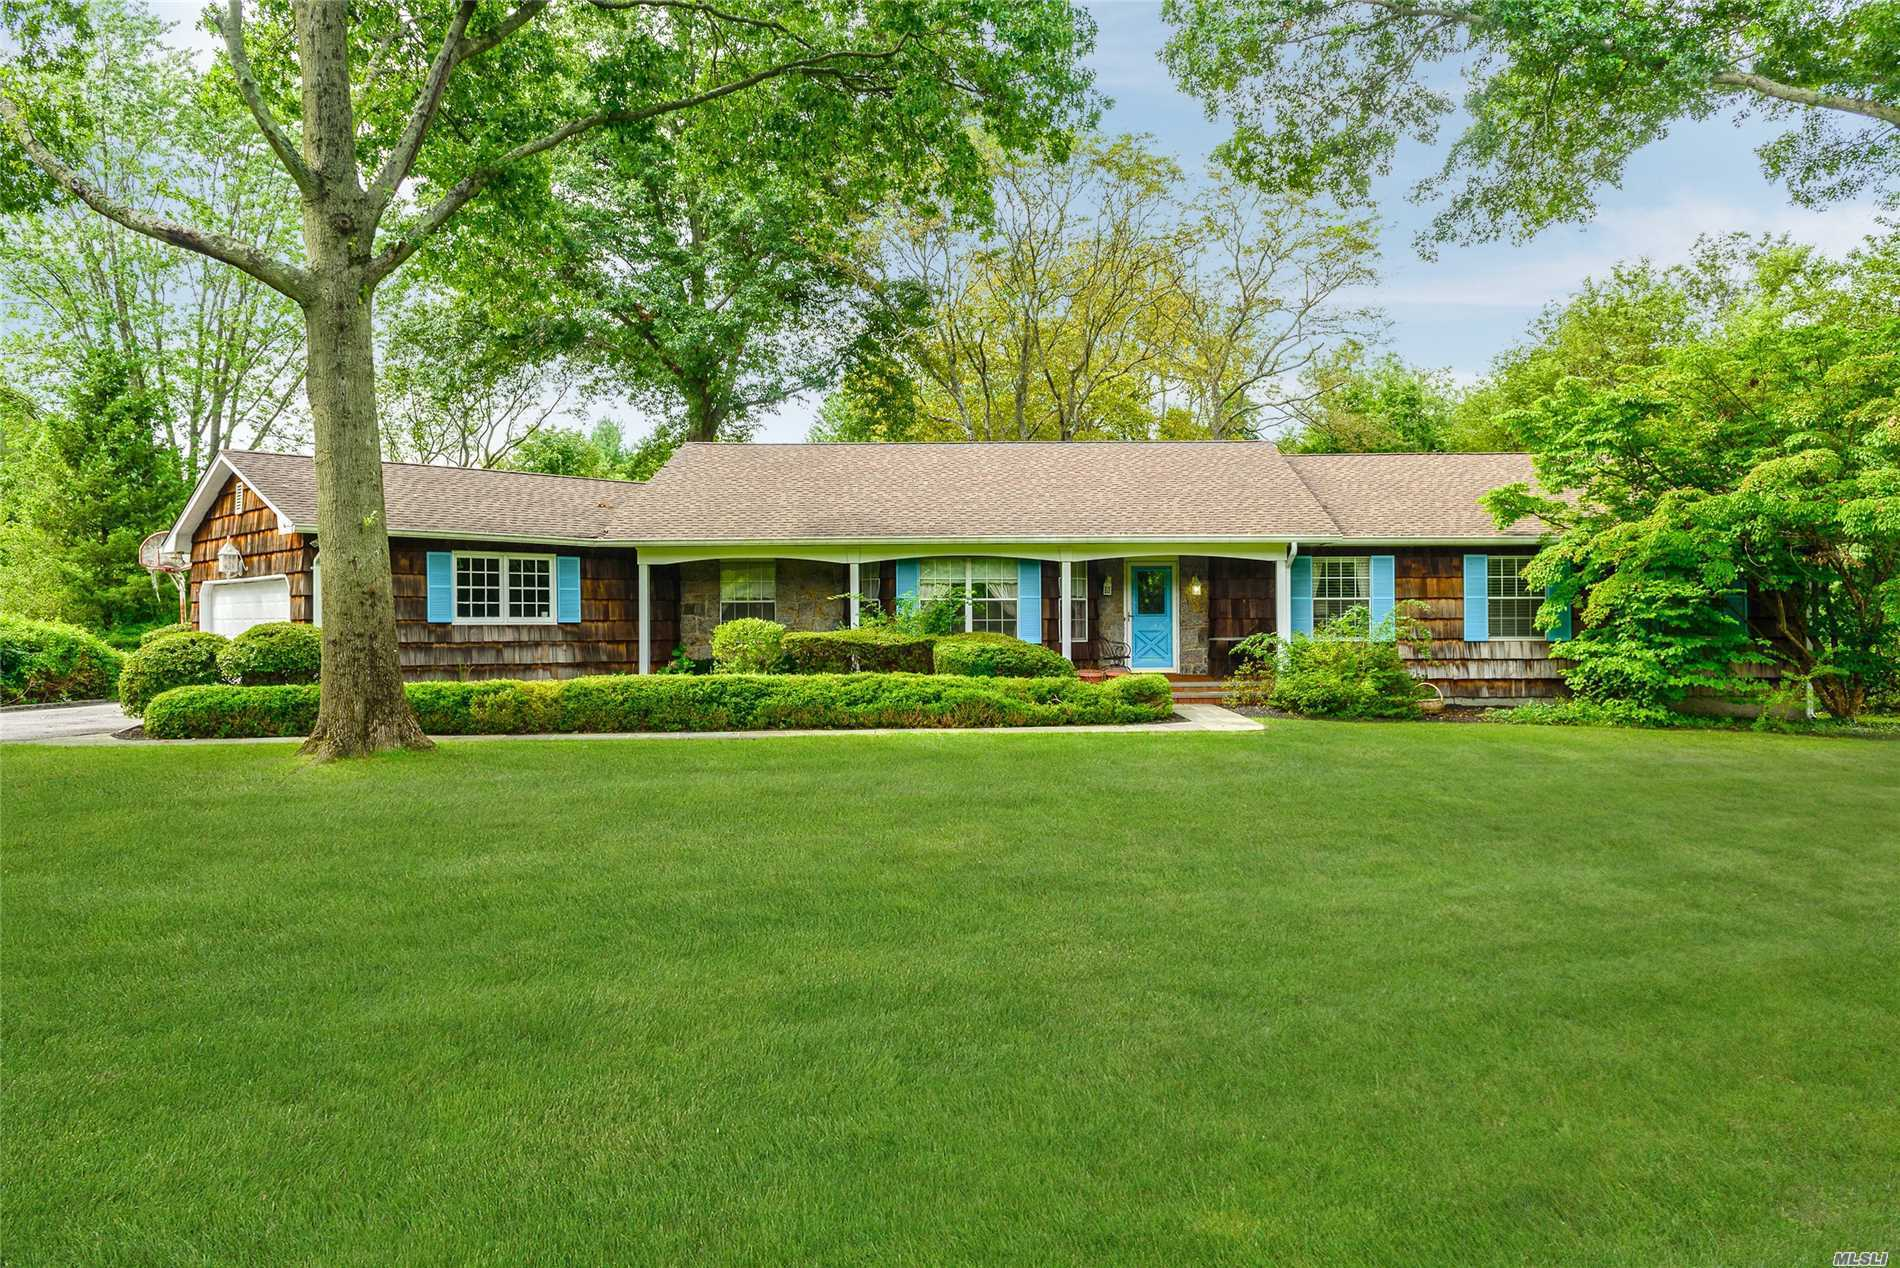 Looking to get into Cold Spring Harbor for under $ 1m? Here's your opportunity....This light filled spacious ranch offers an open floor plan. large master bedroom w/large walk in closet. 3 additional bedrooms, 2.5 bths. Great room w/fireplace , Trex deck off kitchen. Mudroom/laundry on main. Finished basement. 2 flat, private & useable acres. Close to LIRR & both Huntington & Cold Spring Harbor Vill. Cold Spring Harbor Schools.Eagle Dock Beach & Mooring (dues). Eligible for 10% tax reduction.